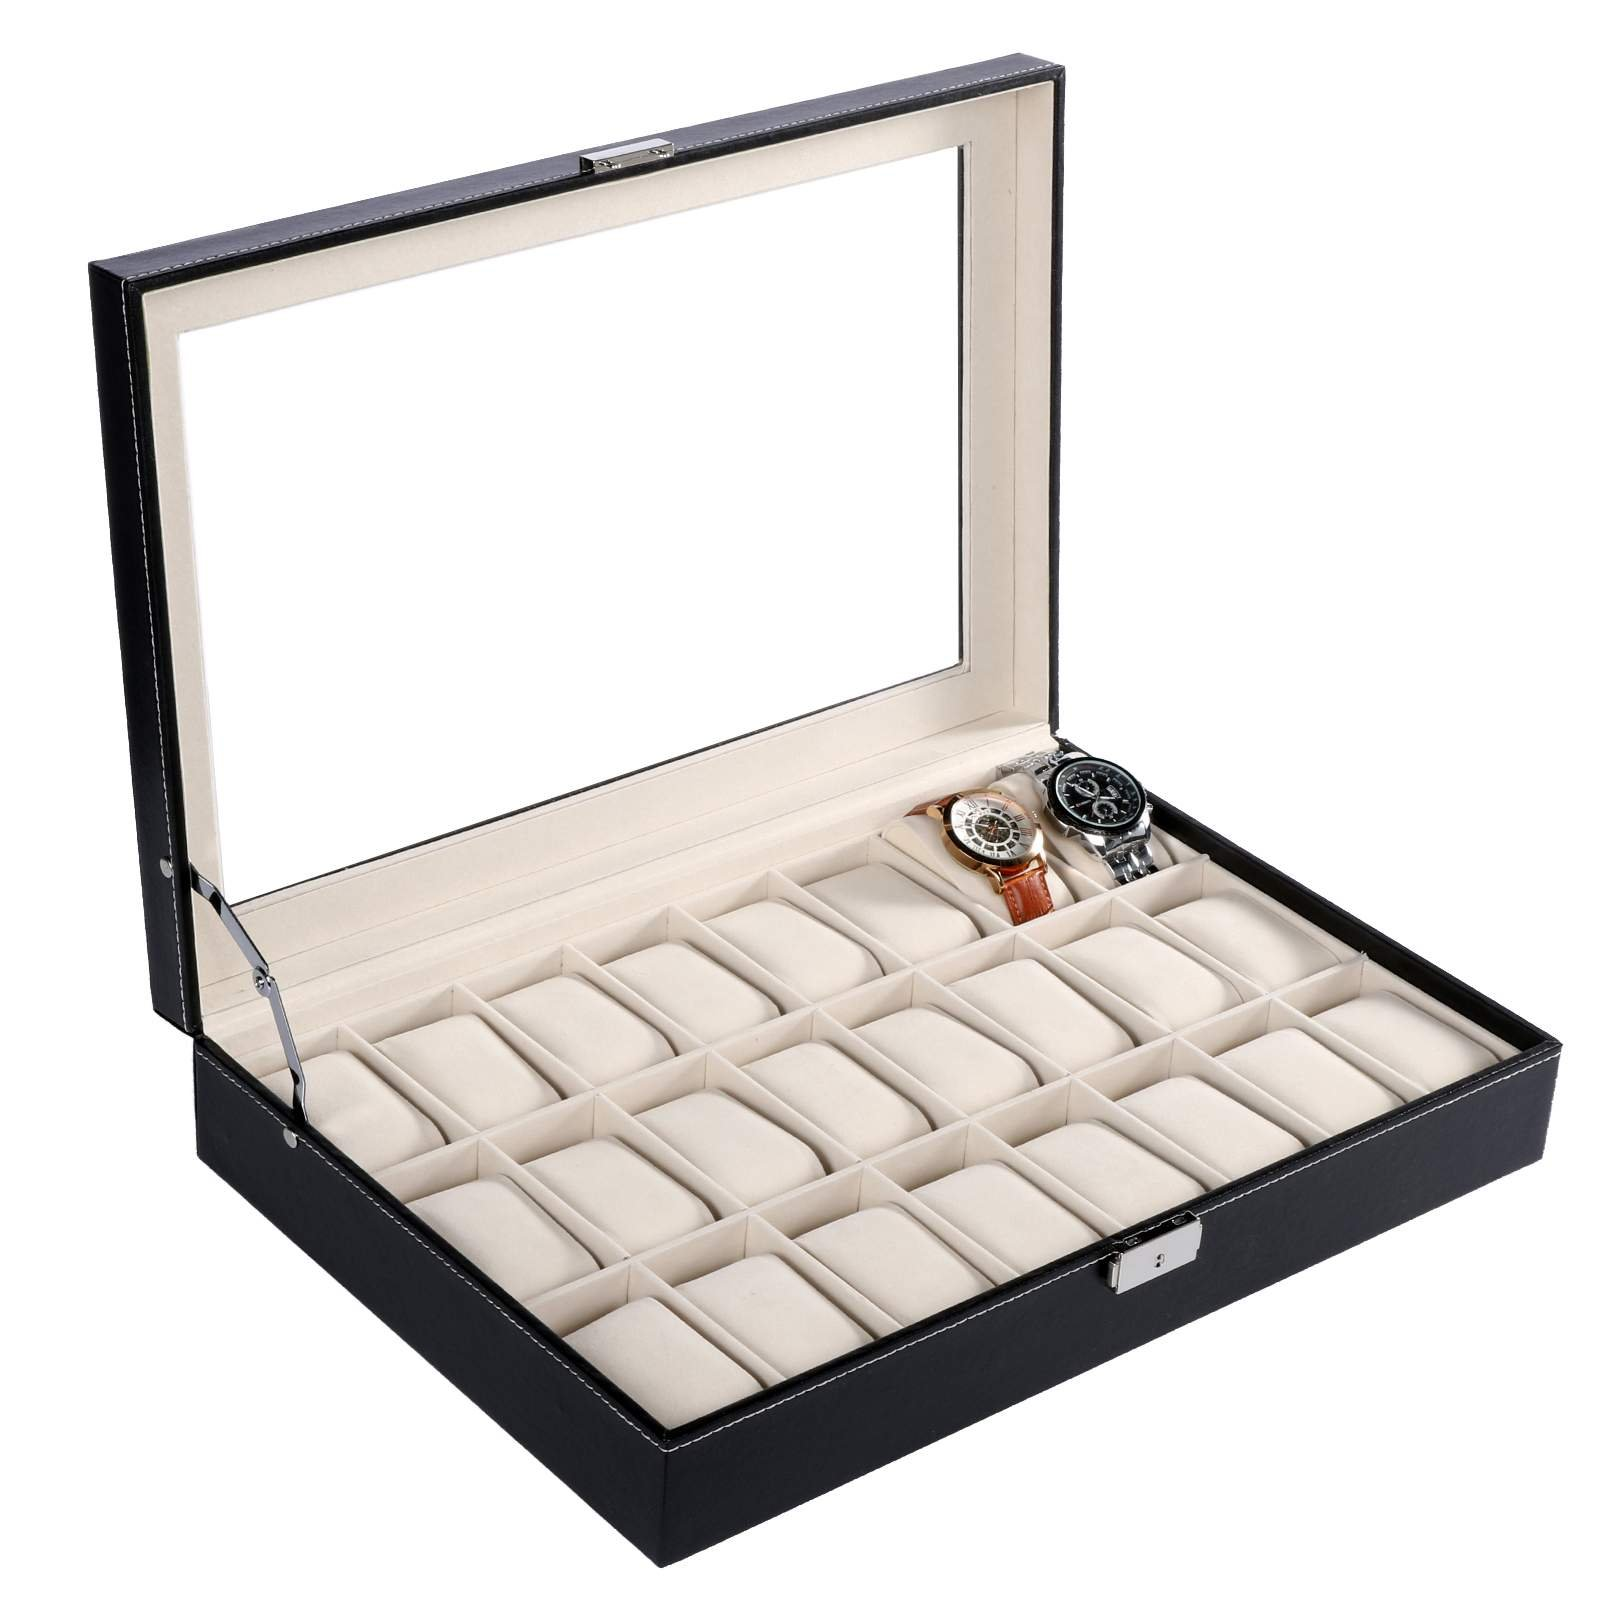 Homdox Watch Case Glass Top PU Leather Display Storage Box Chest Holds 24 Watches